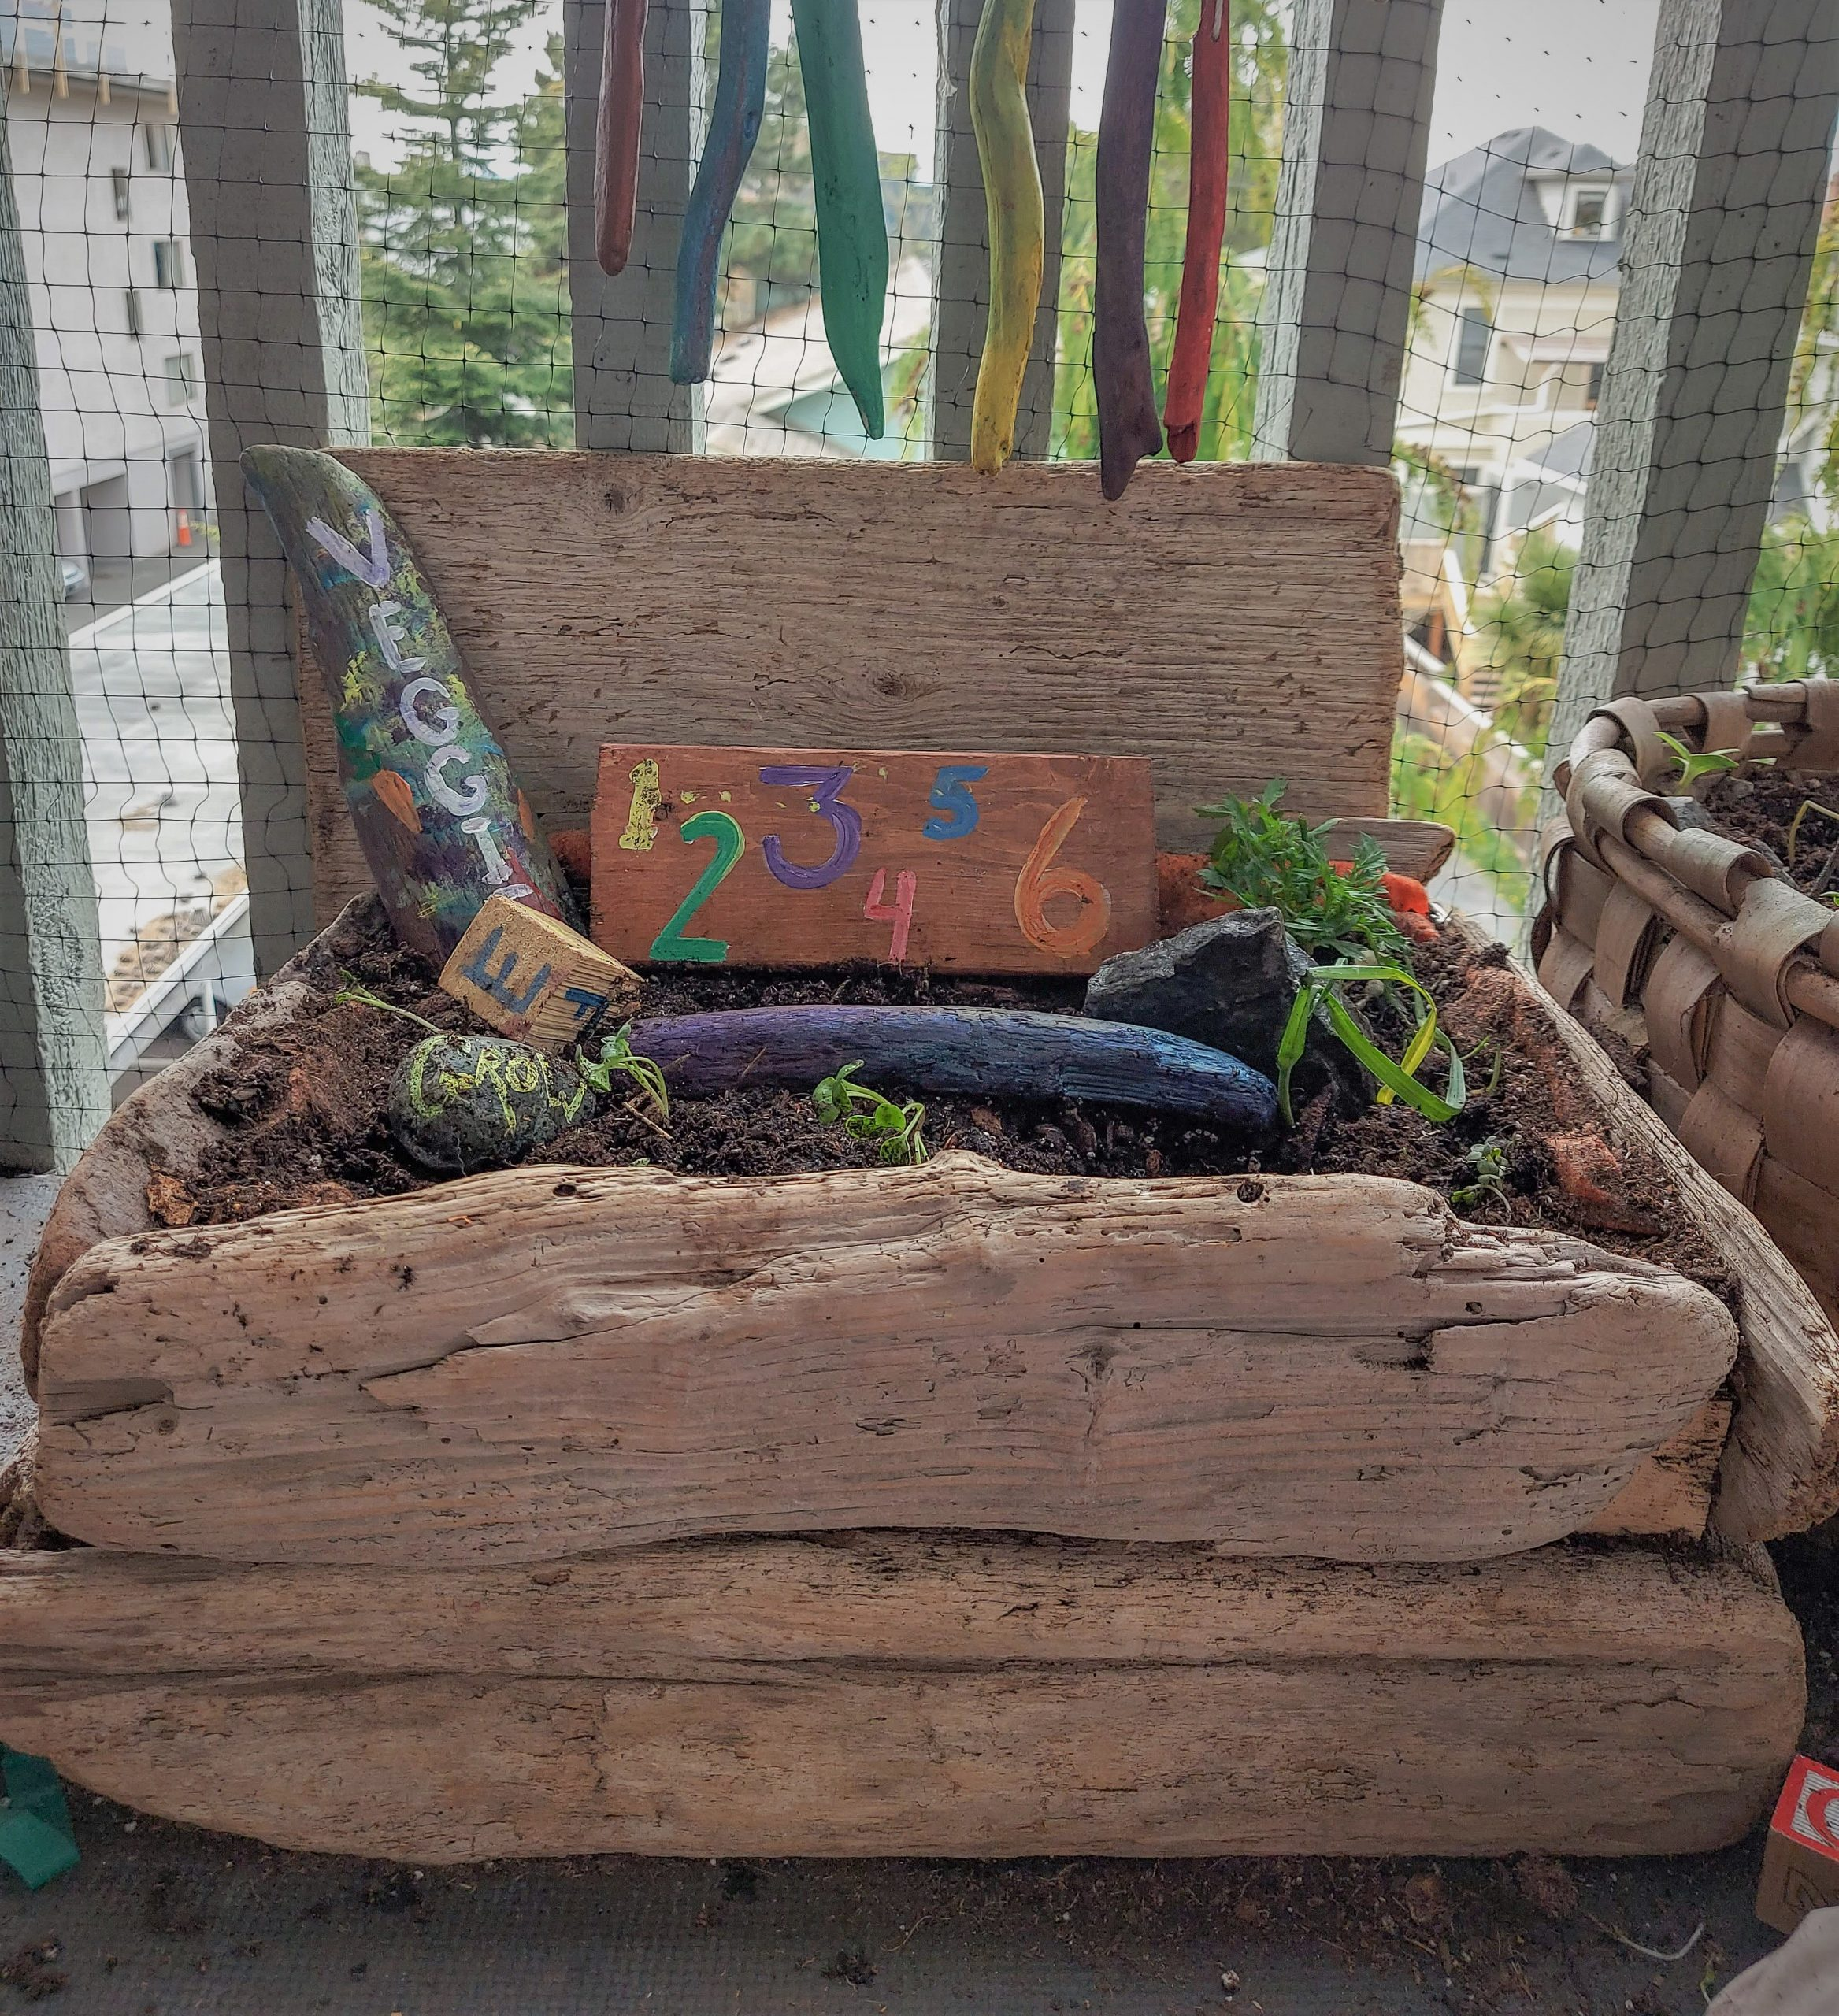 How to make a driftwood planter, making a planter for the kids